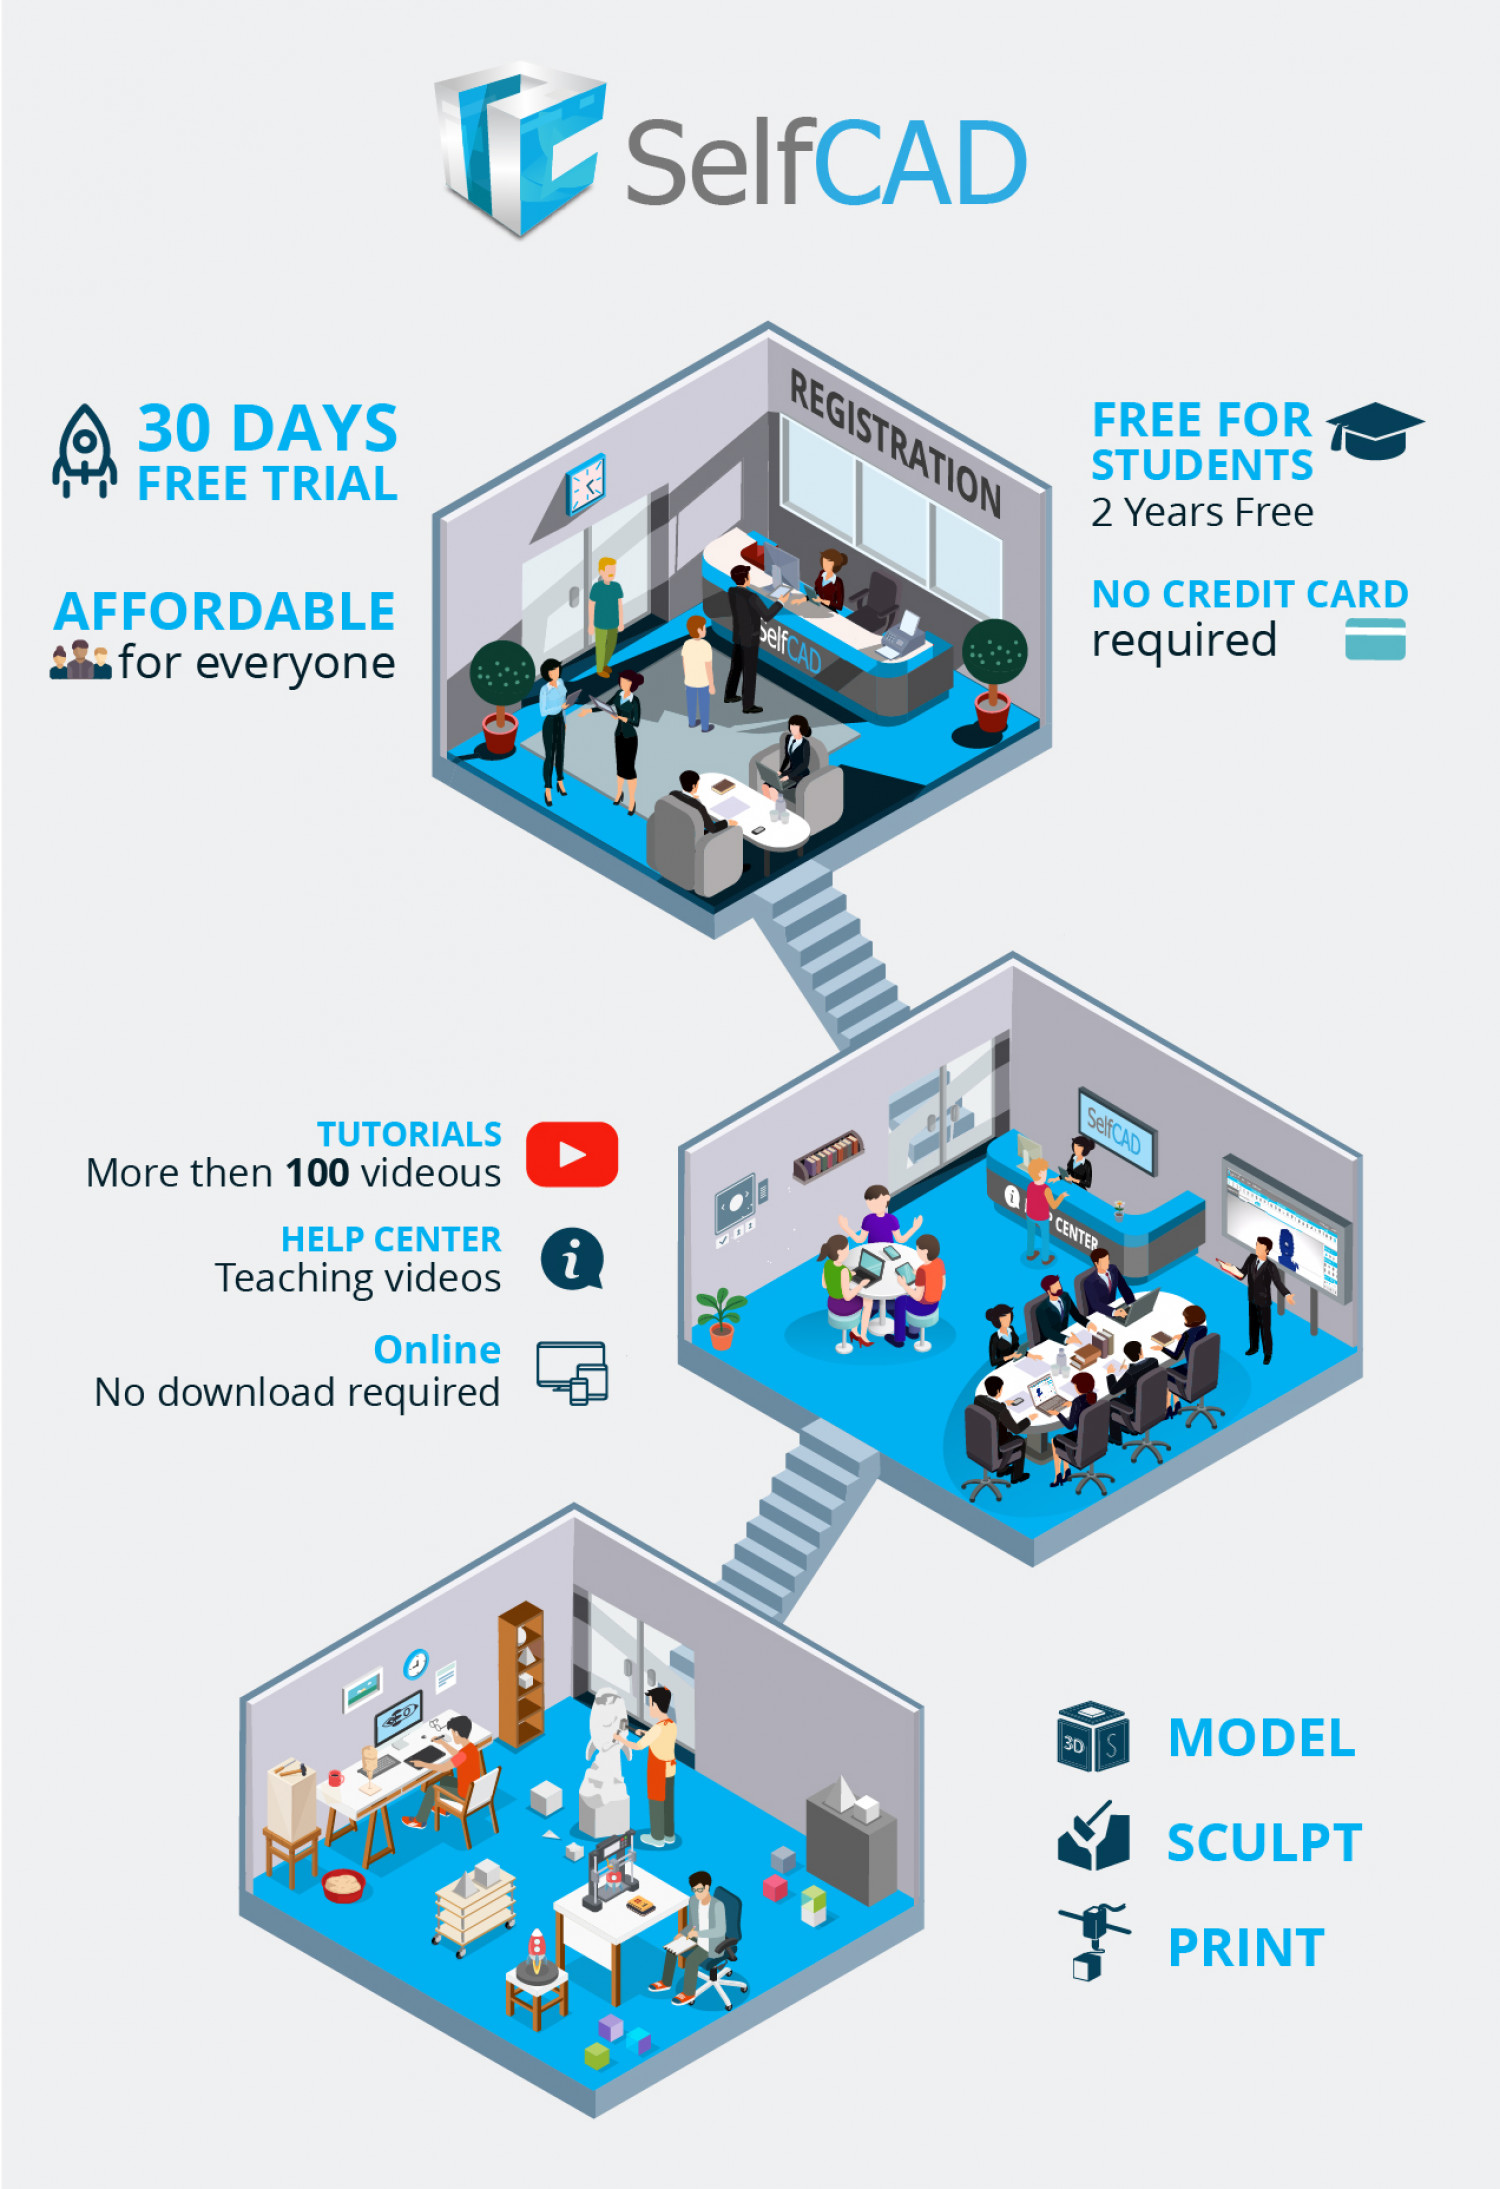 SelfCAD- A new 3D Modeling software for students and teachers Infographic